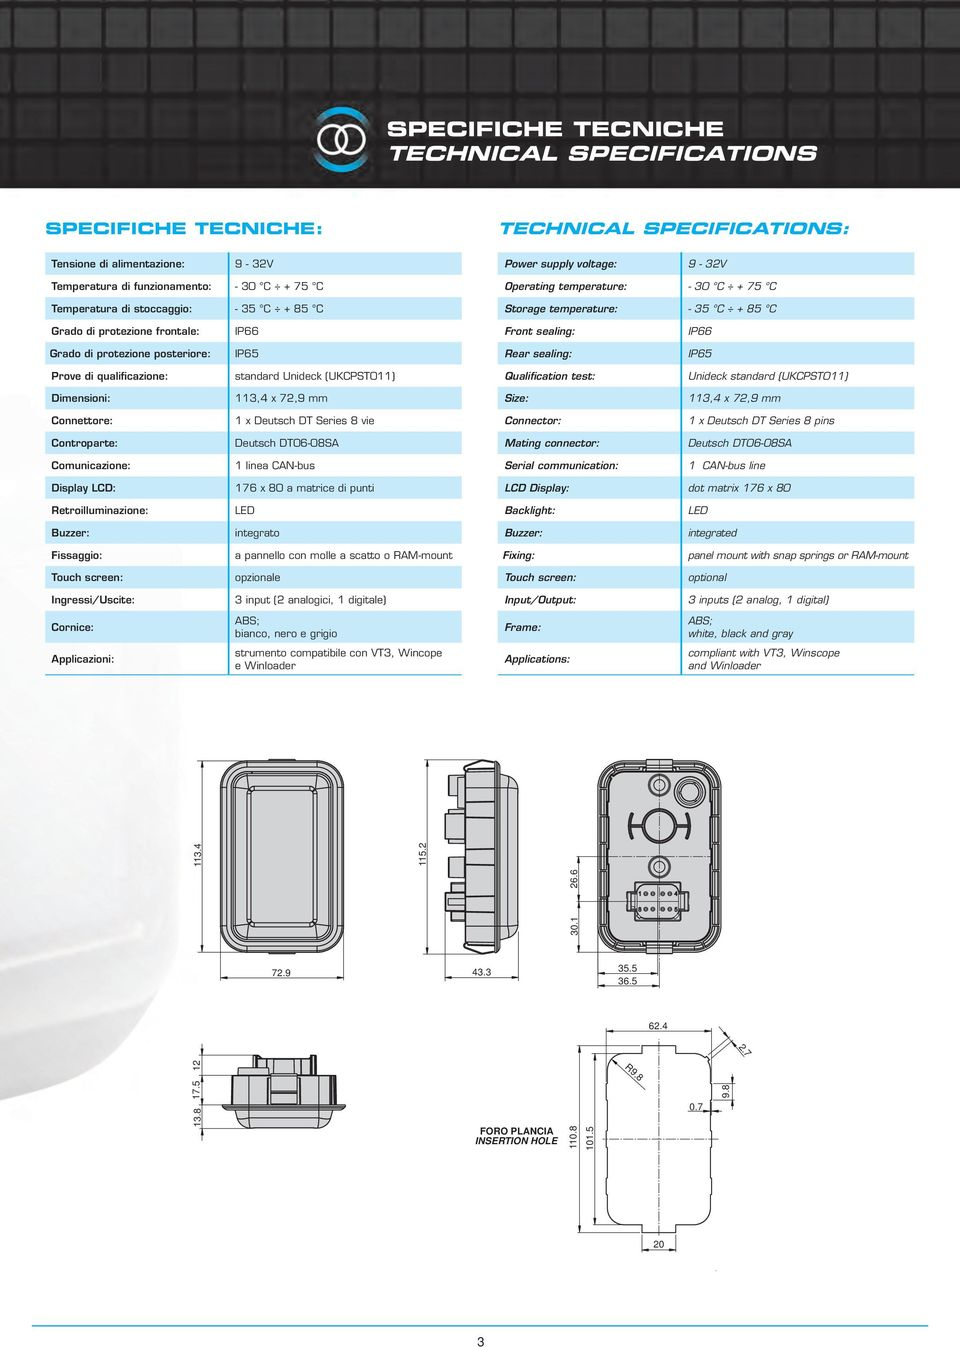 IP65 Rear sealing: IP65 Prove di qualificazione: standard Unideck (UKCPST011) Qualification test: Unideck standard (UKCPST011) Dimensioni: 113,4 x 72,9 mm Size: 113,4 x 72,9 mm Connettore: 1 x